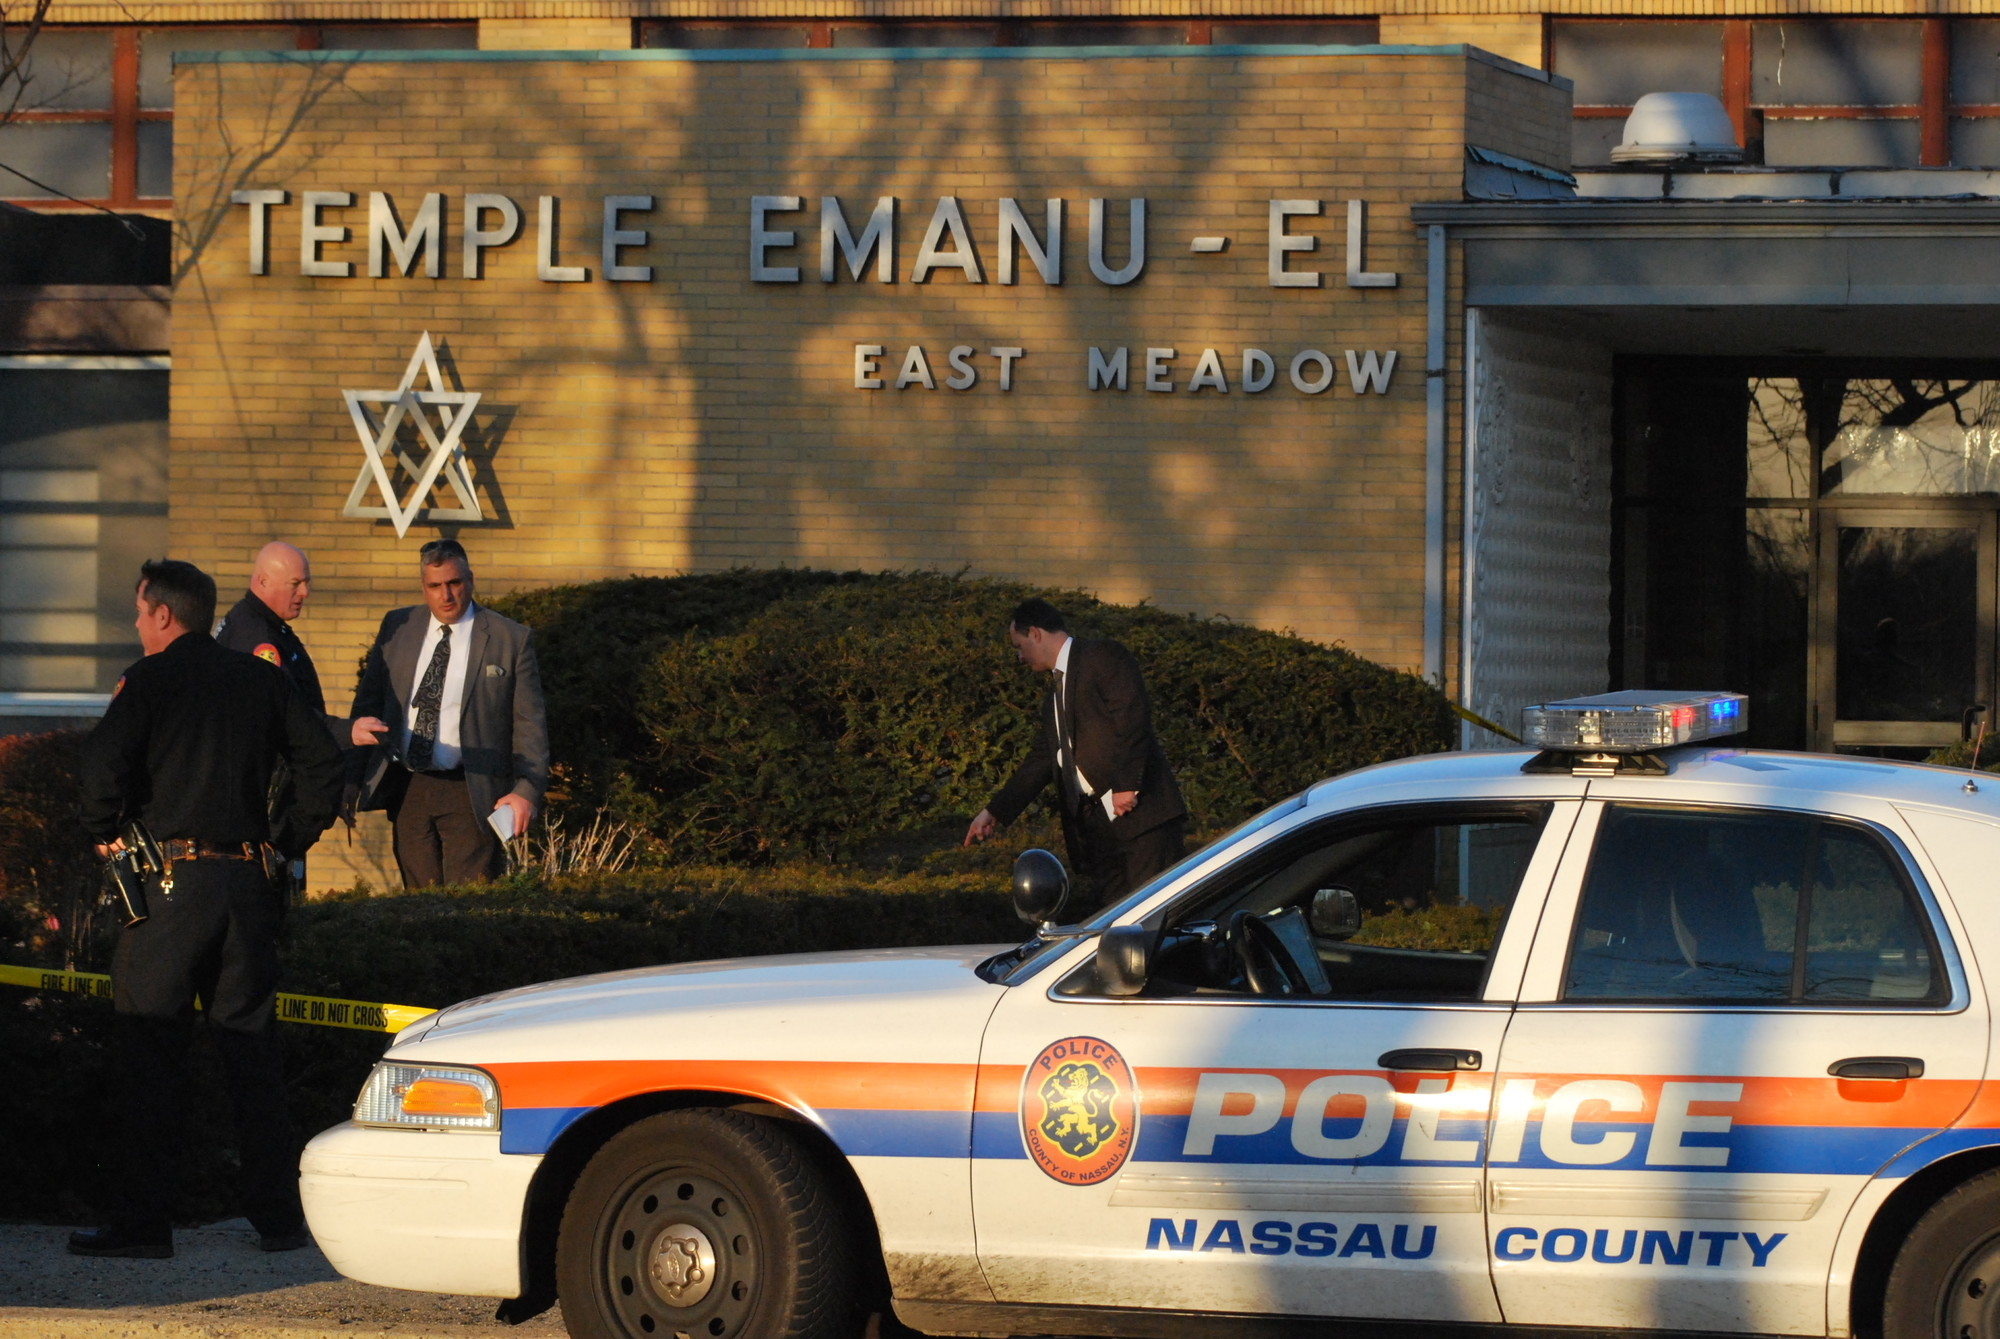 Police investigated outside Temple Emanu-El Saturday afternoon after a 34-year-old man was found dead in the parking lot.